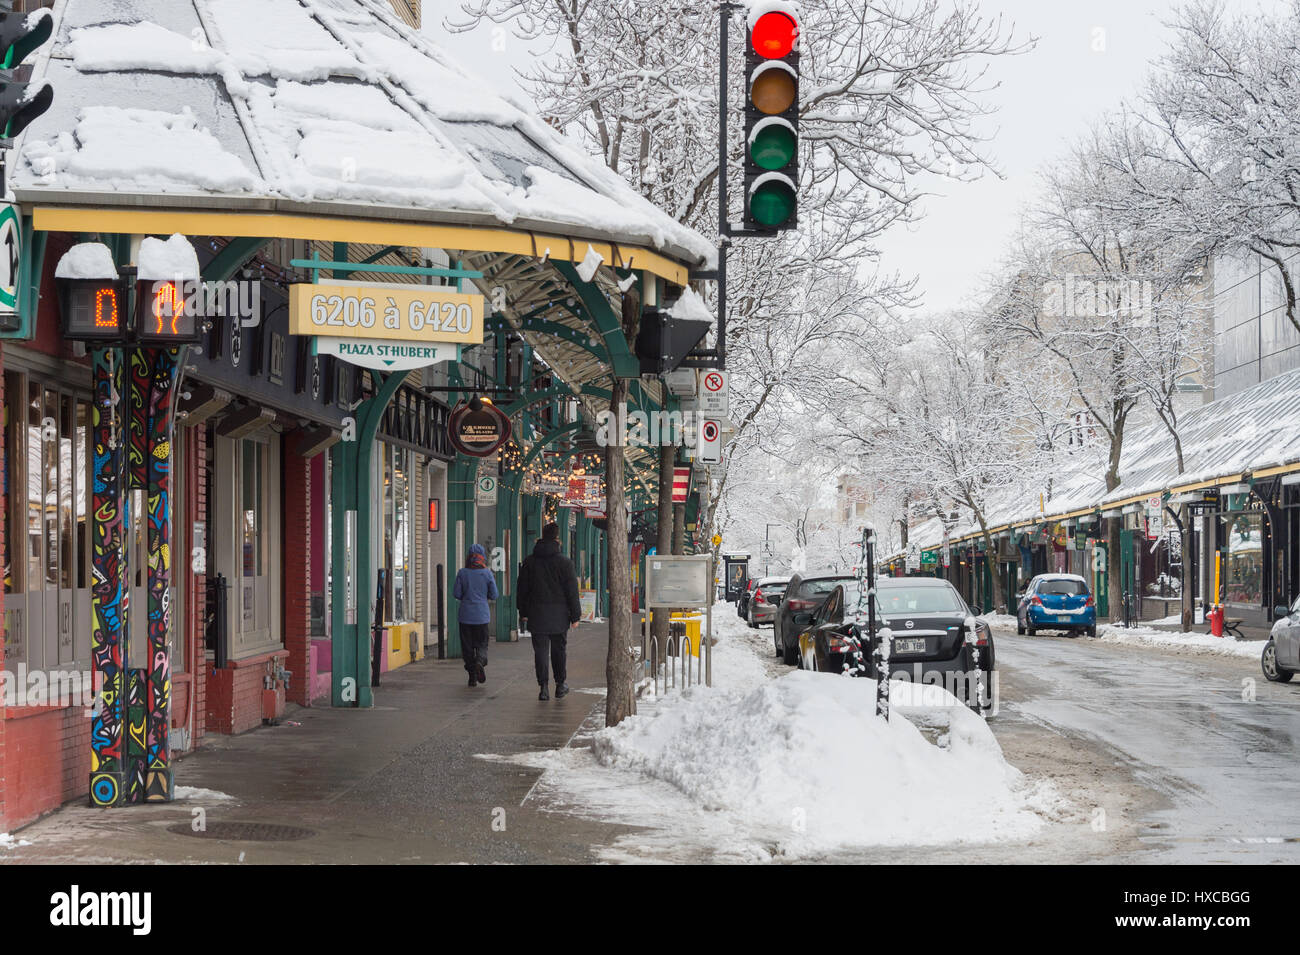 Montreal, Canada - 25 March 2017: Plaza St-Hubert after snowstorm - Stock Image